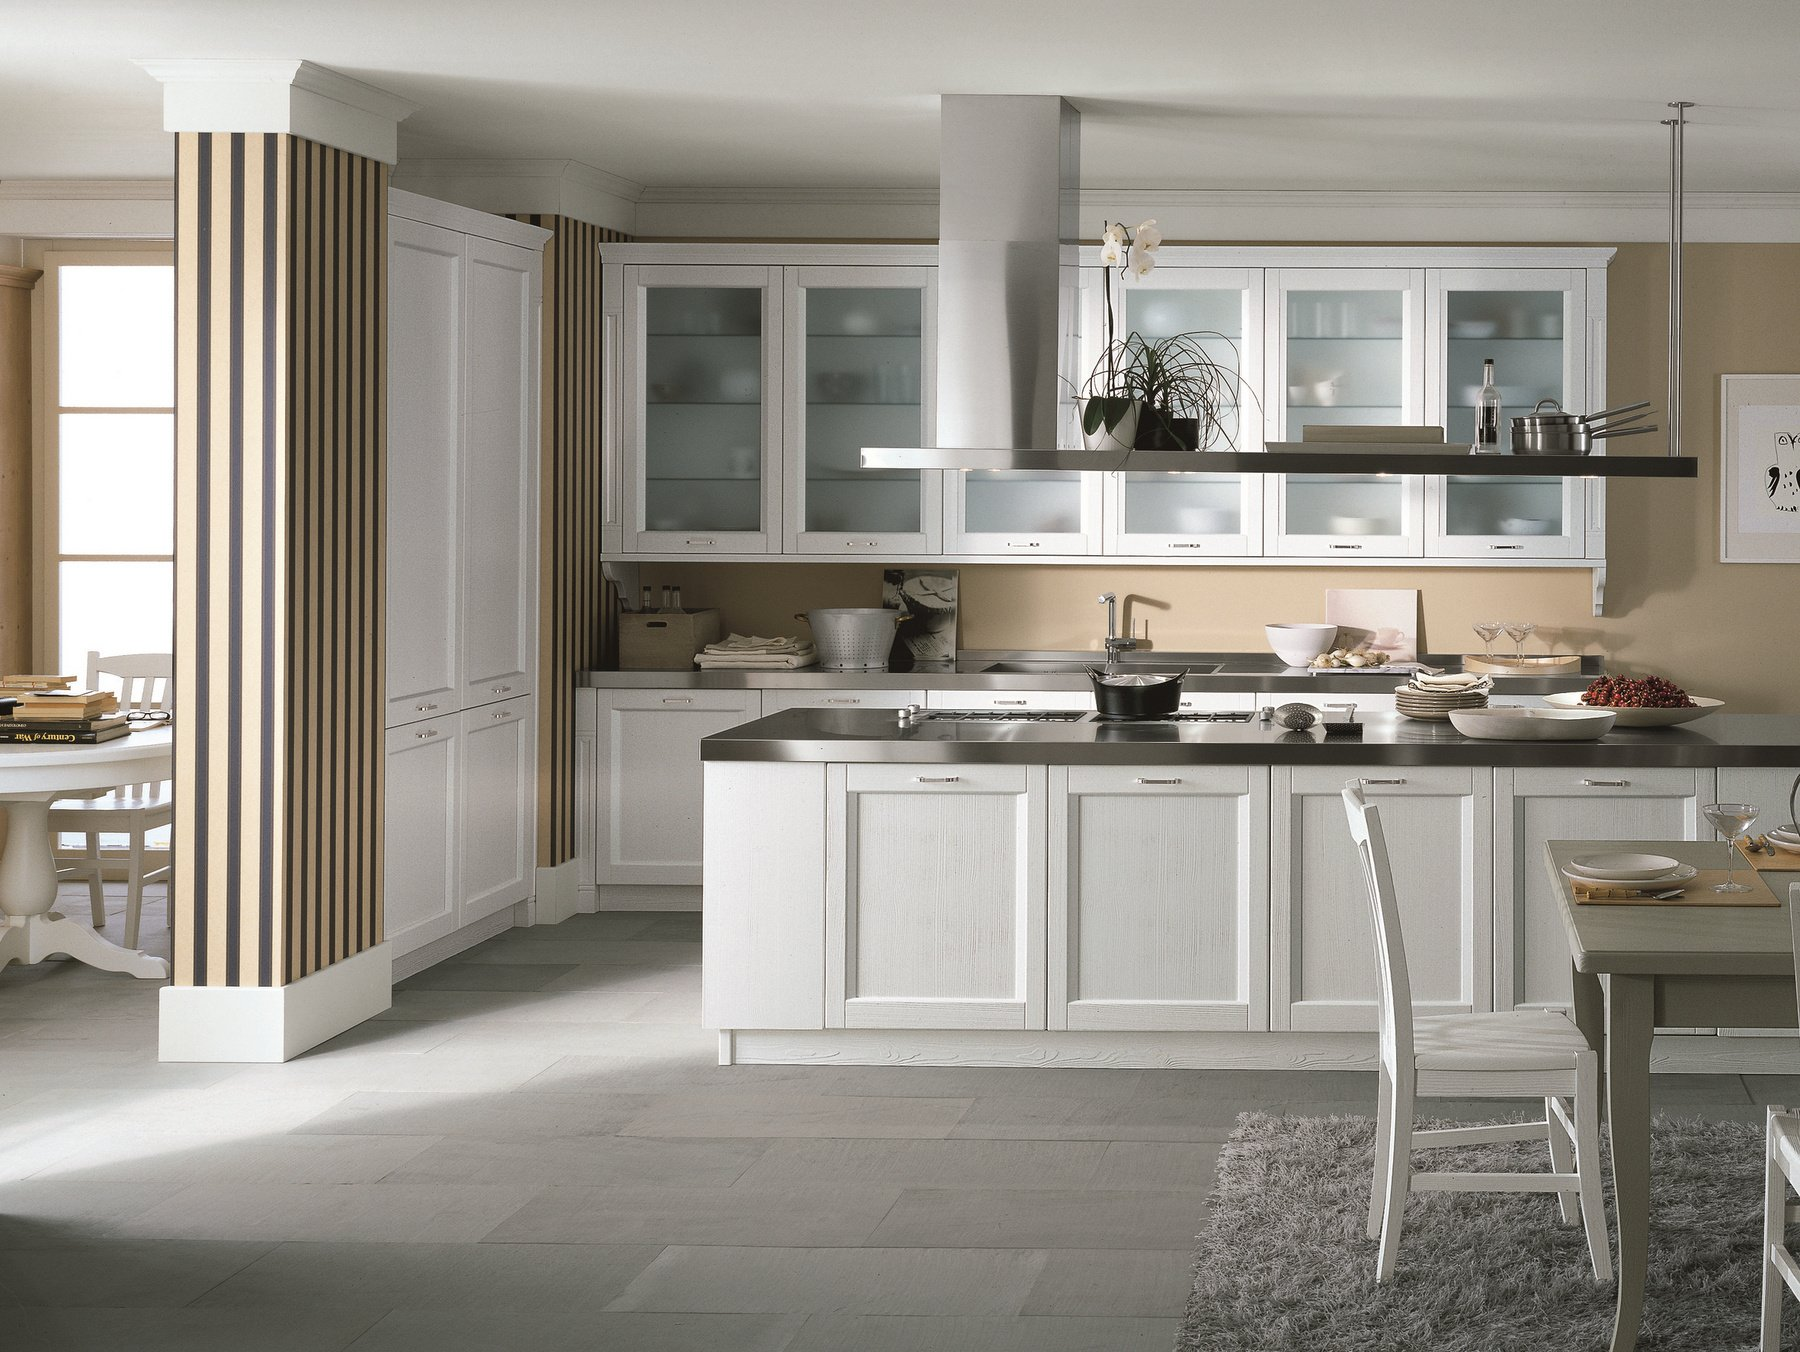 neoclassical style kitchens | archiproducts - Mondo Küche